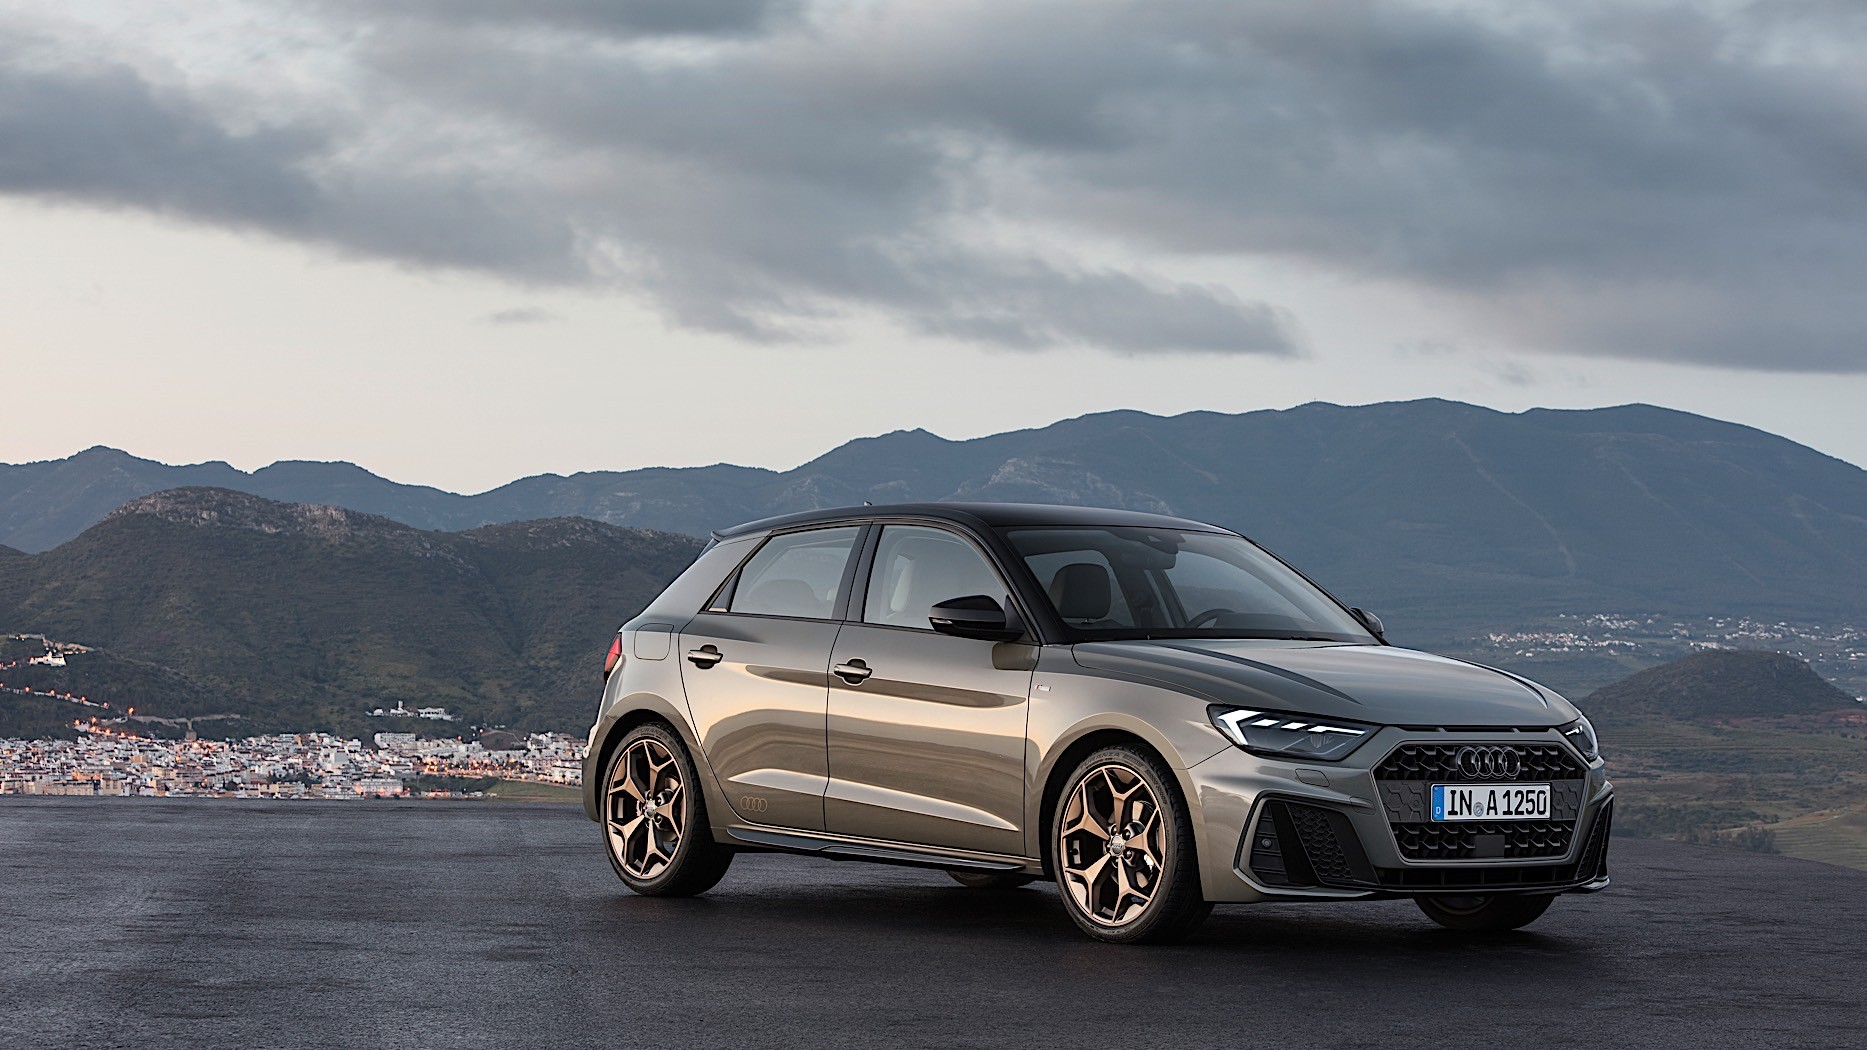 Audi A1 New Model >> UPDATE: 2018 Audi A1 Sportback to Sell from 20,000 Euros - autoevolution